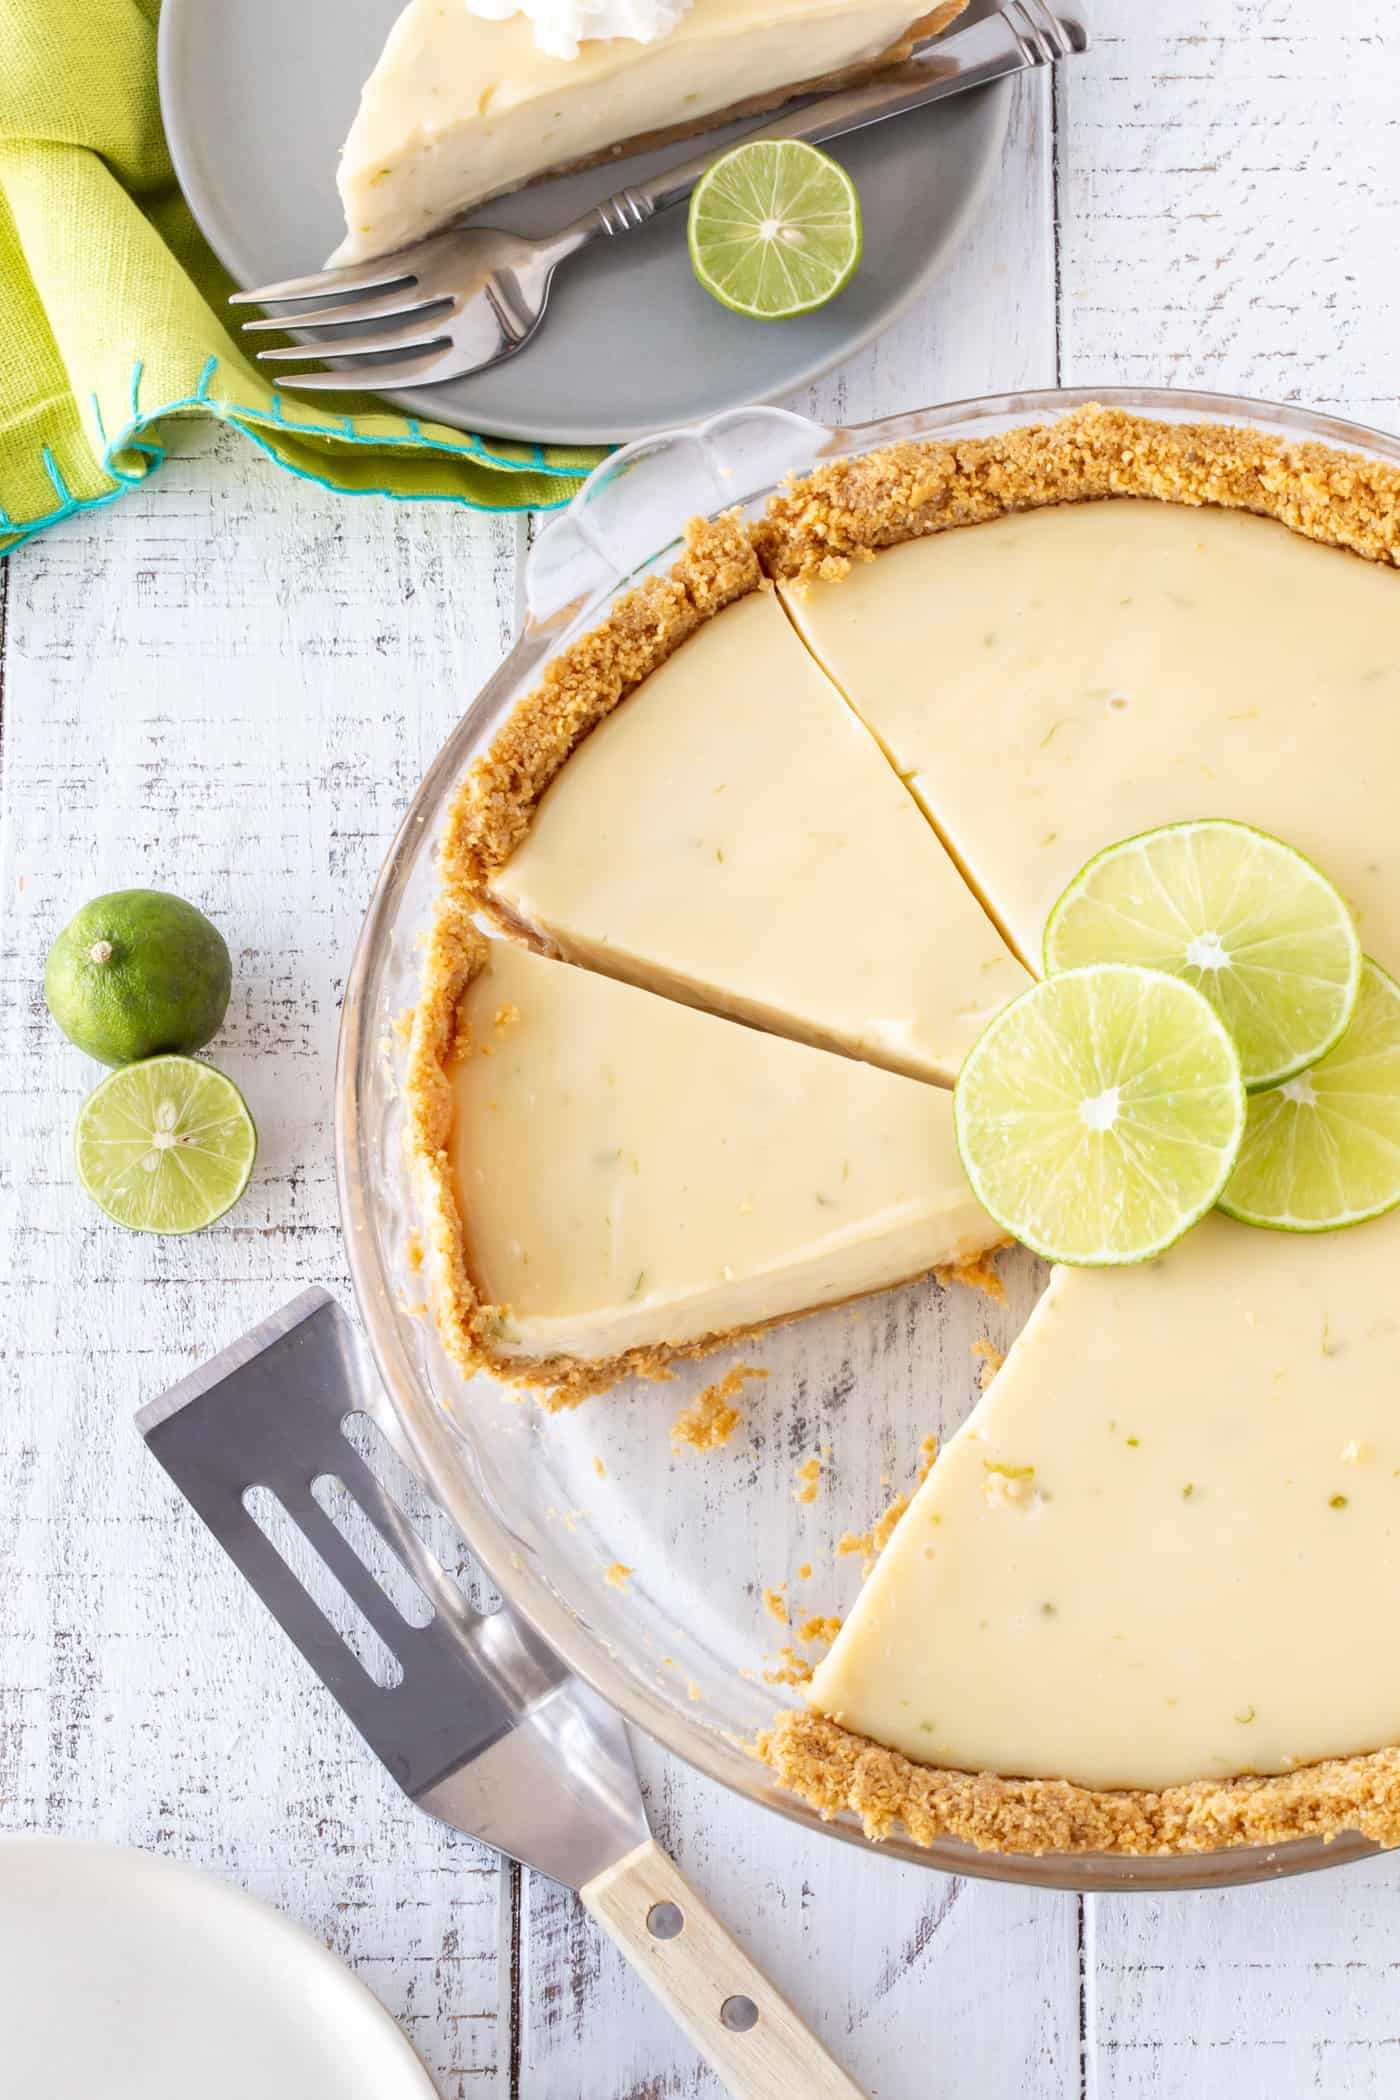 Top down image of sliced key lime pie in a glass pie plate with fresh lime slices for garnish.